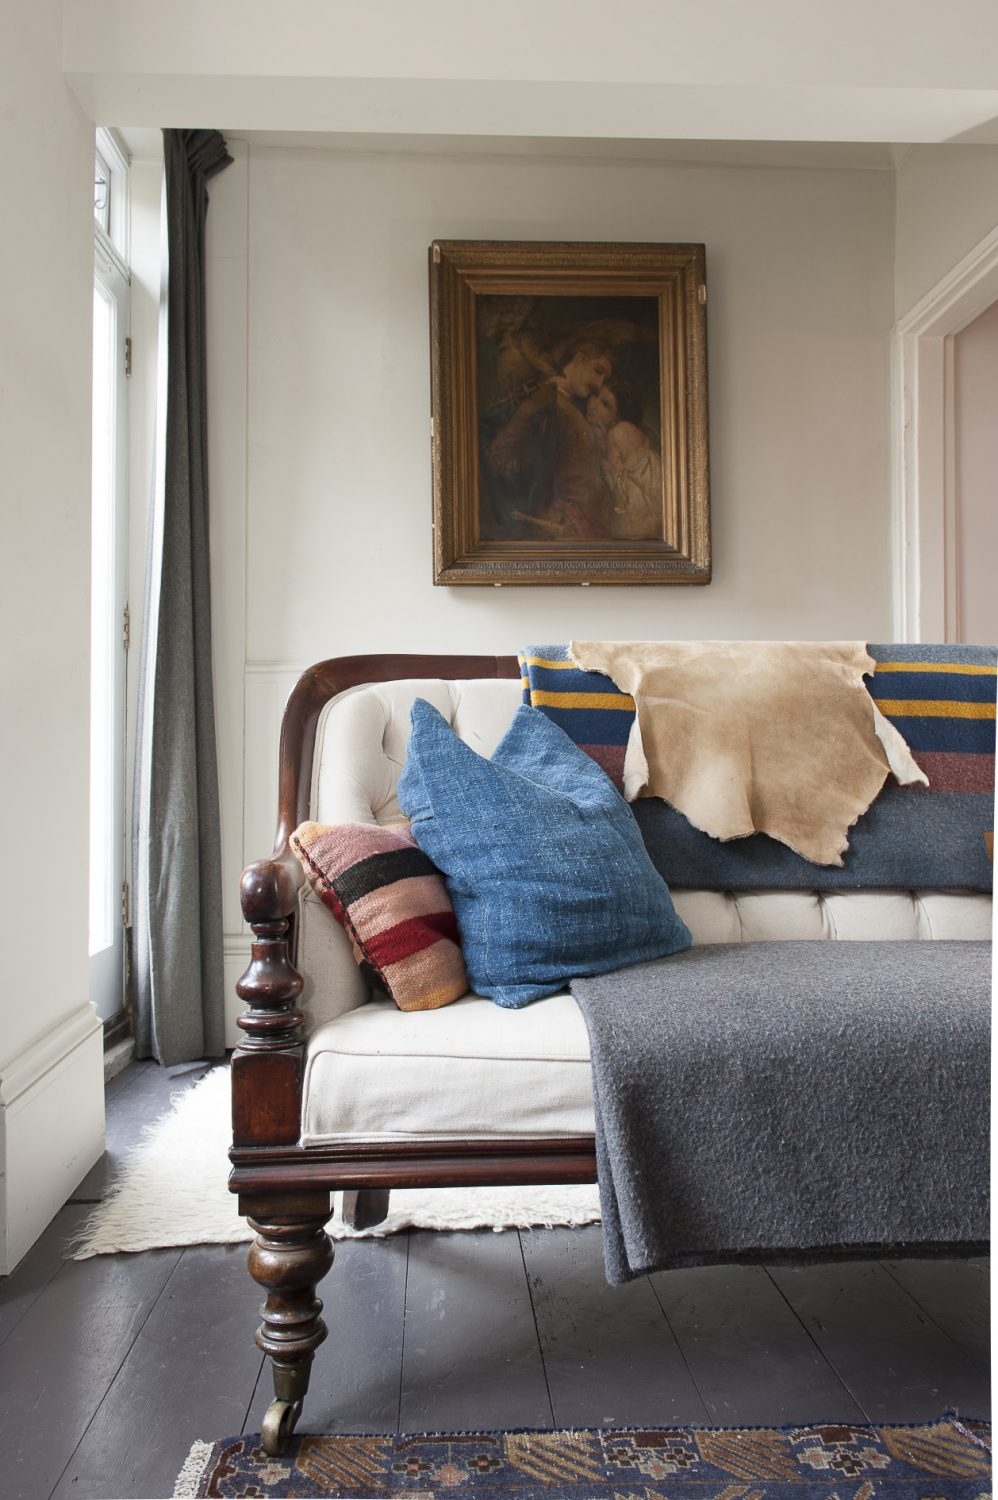 Fabrics and textures enhance the space